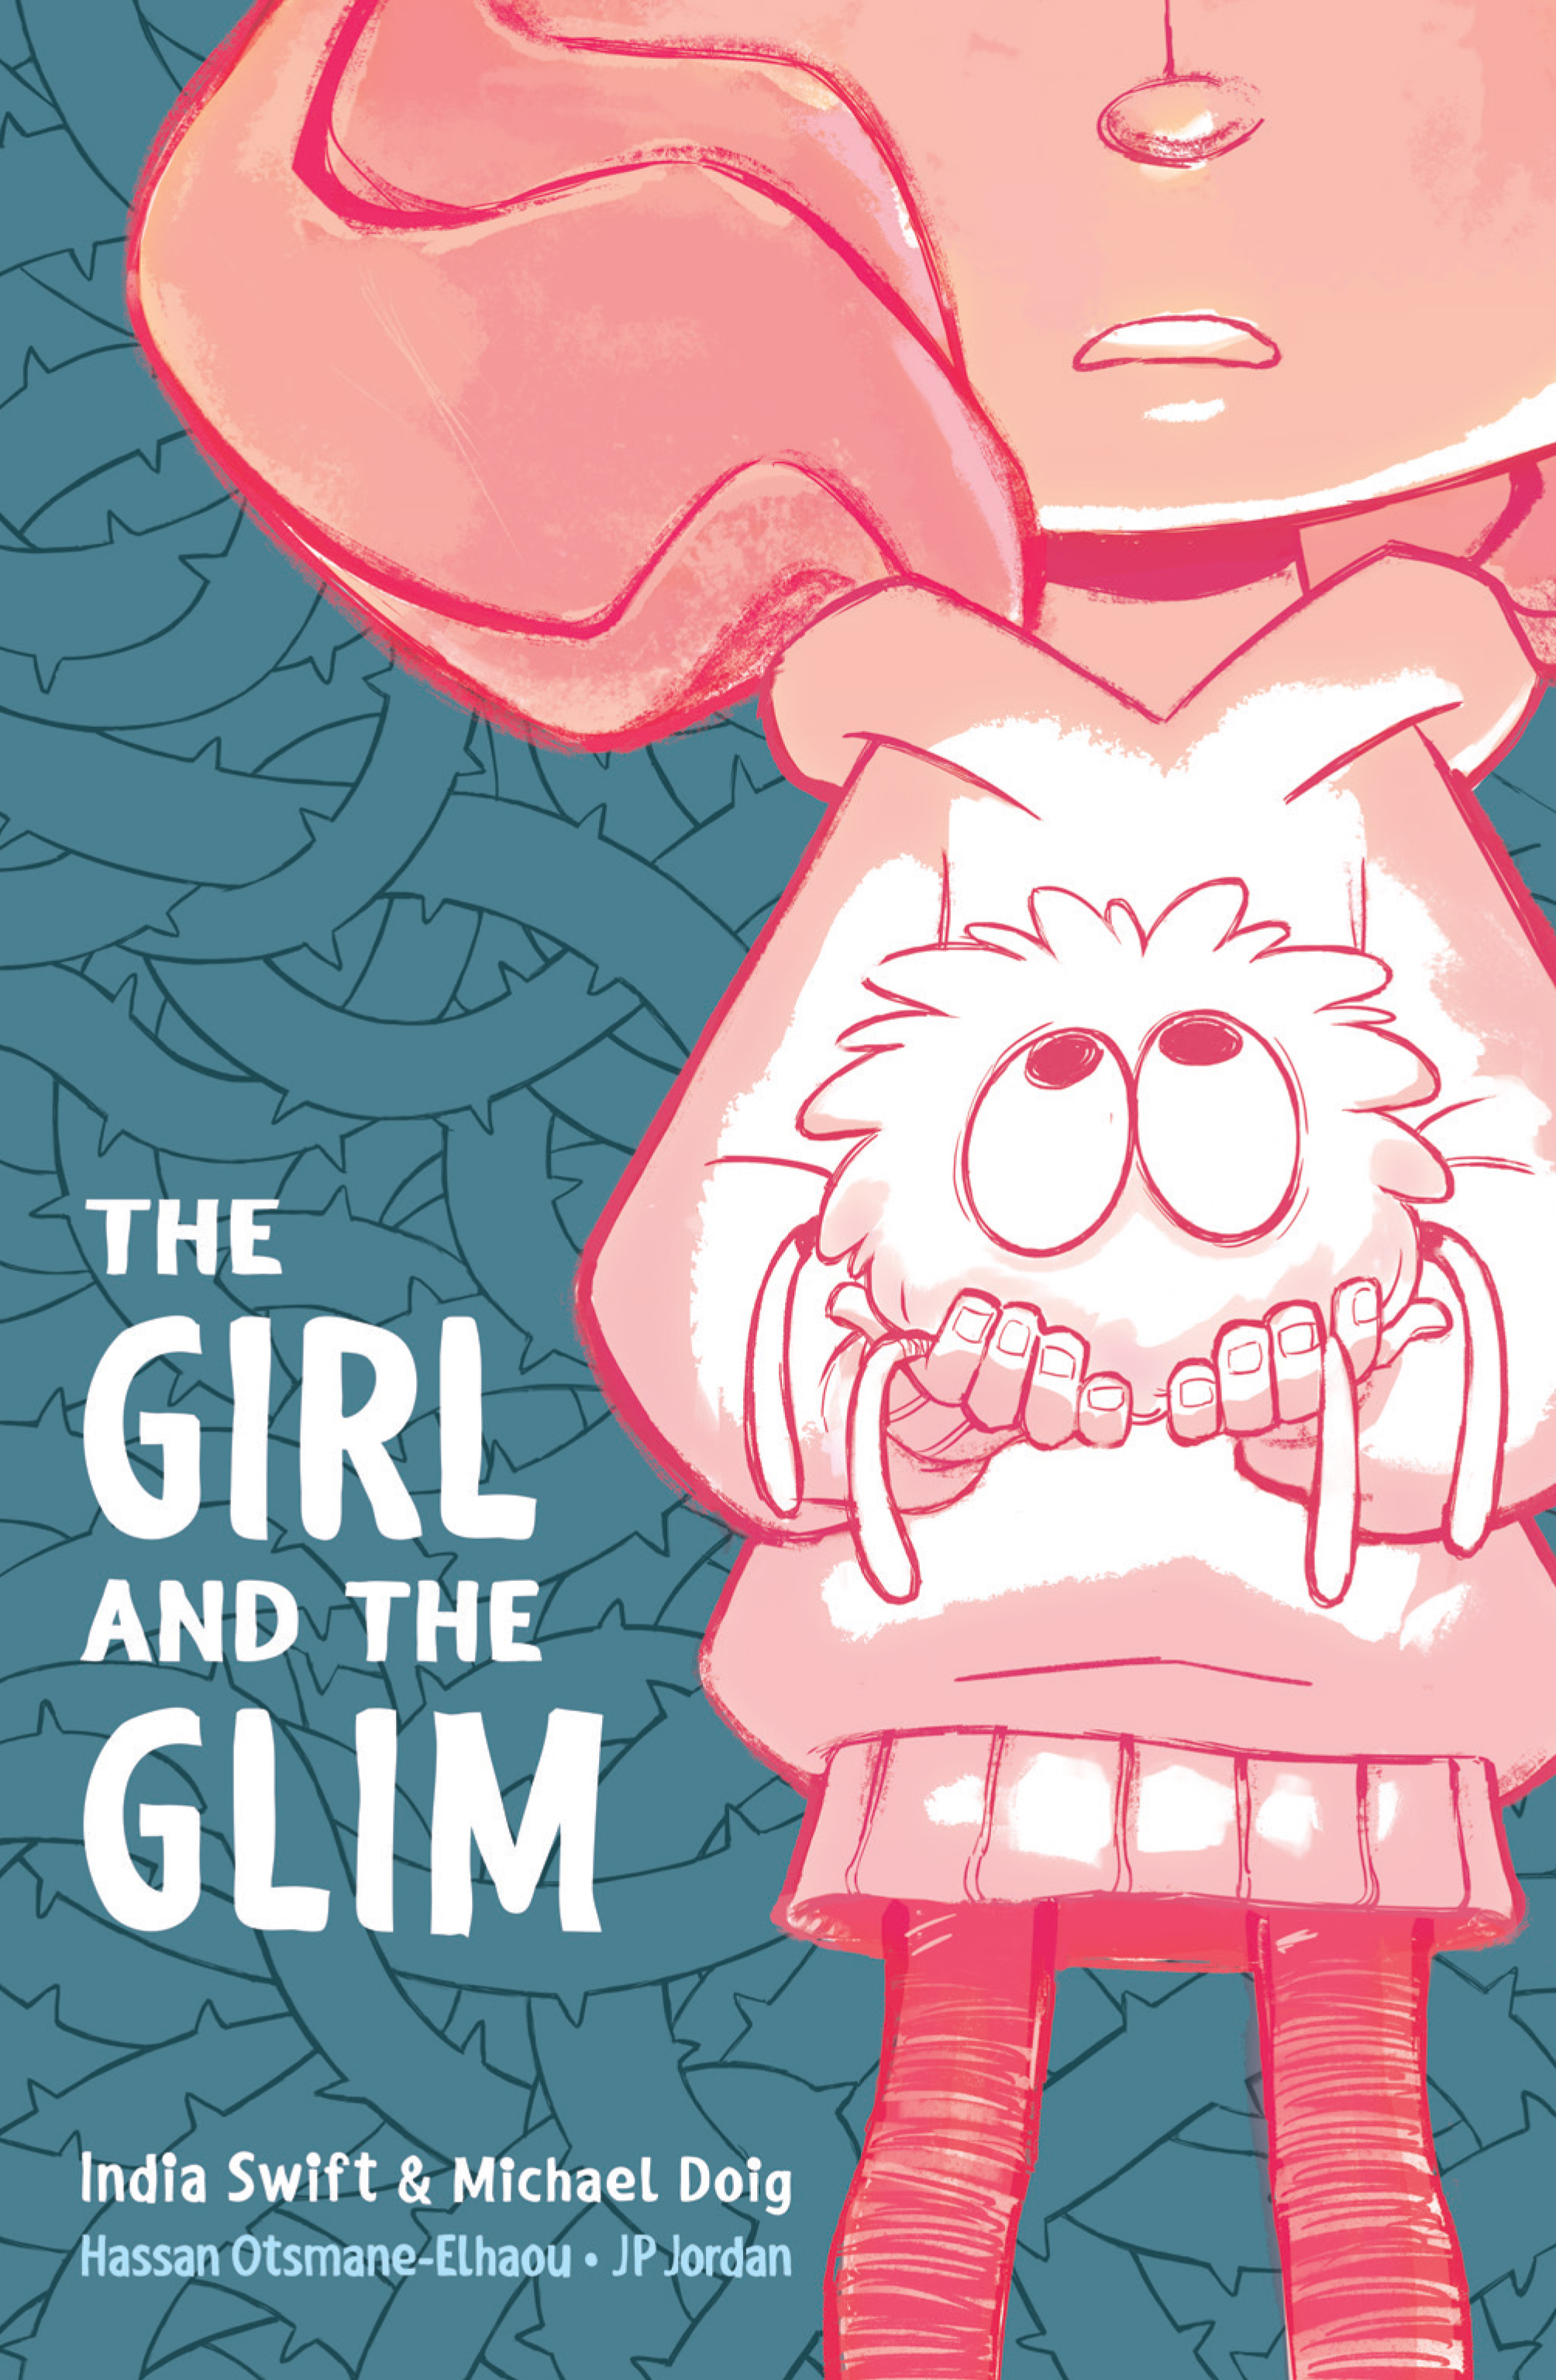 THE GIRL AND THE GLIM - 60 Page Full Colour. Books One follows Bridgette and is the first part of a larger narrative which explores how fear can bring people together.